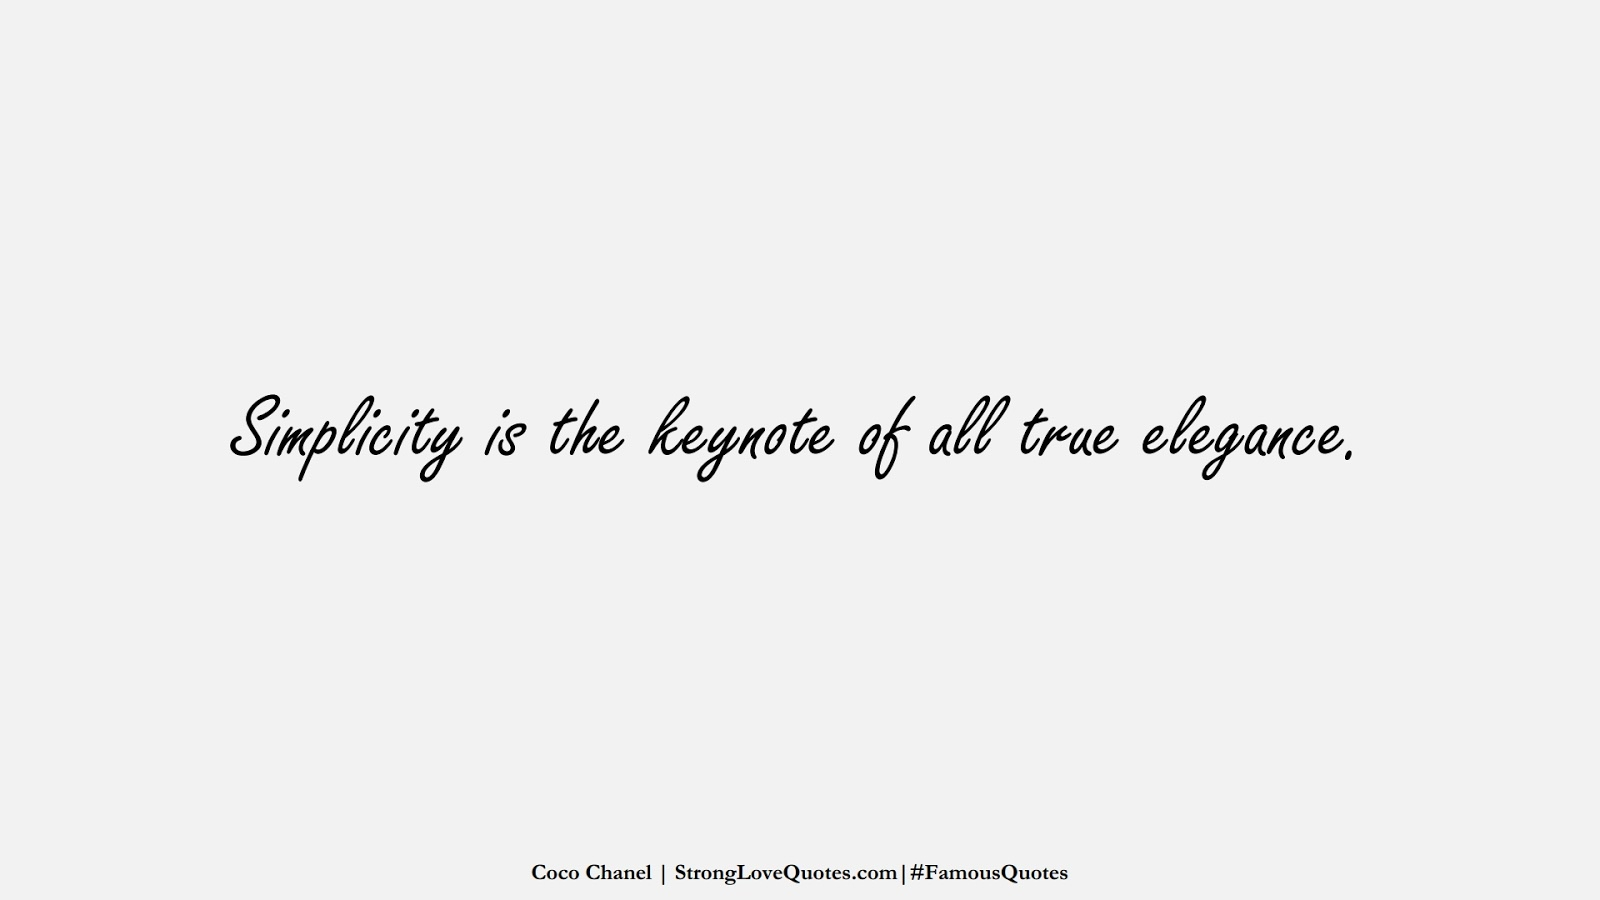 Simplicity is the keynote of all true elegance. (Coco Chanel);  #FamousQuotes